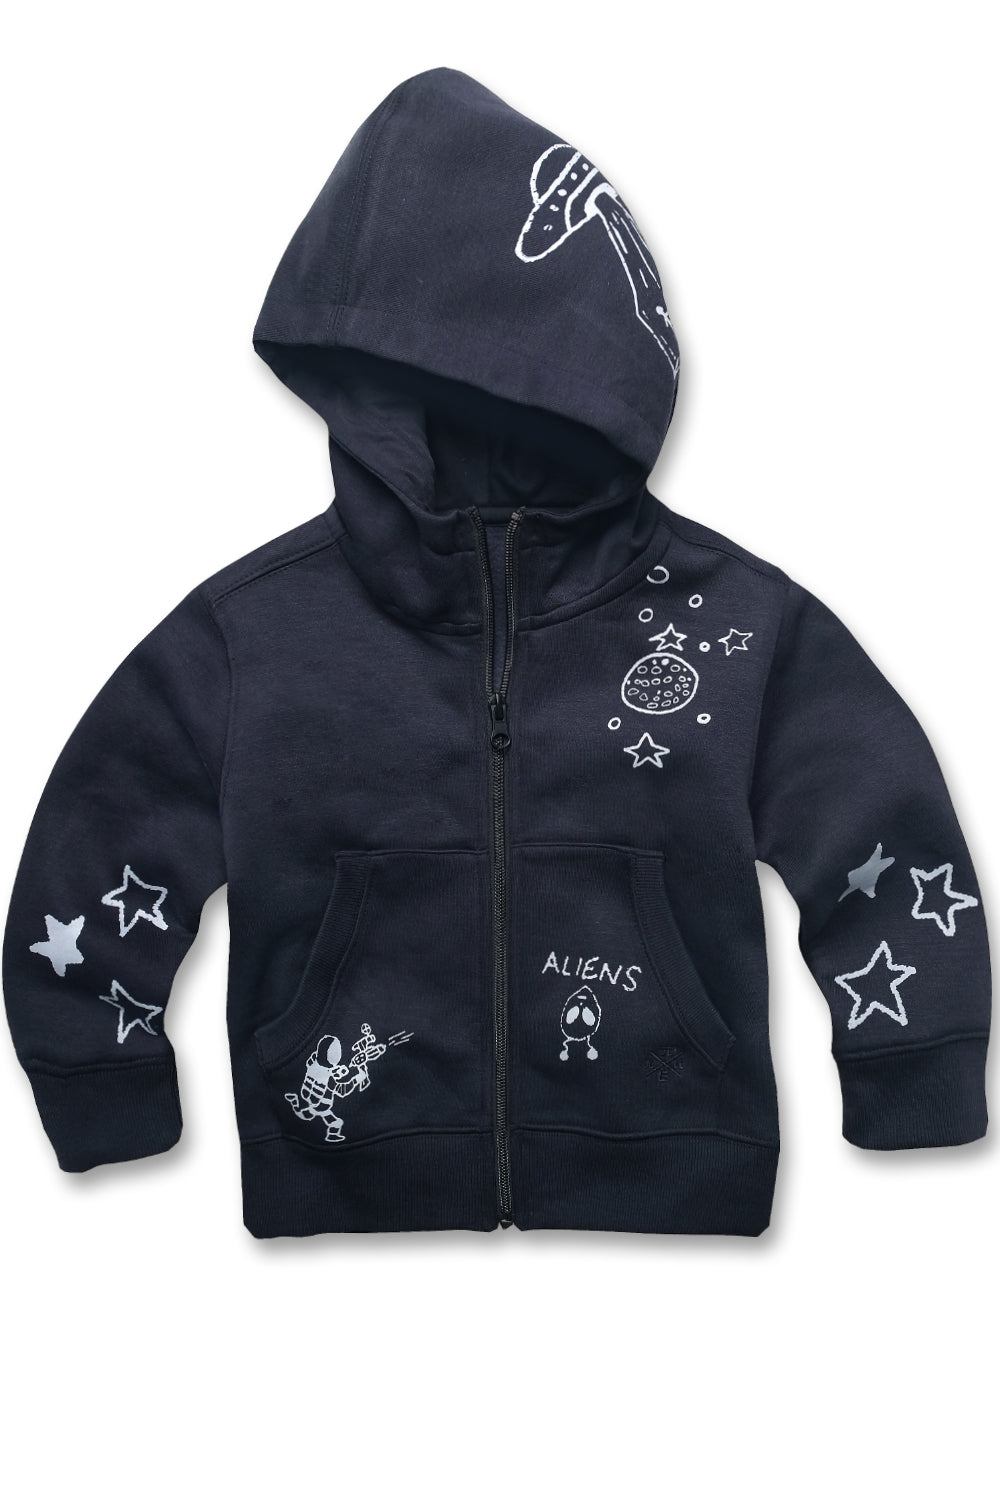 Jordan Craig - Kids Galaxy Zip Up Hoodie (Navy)